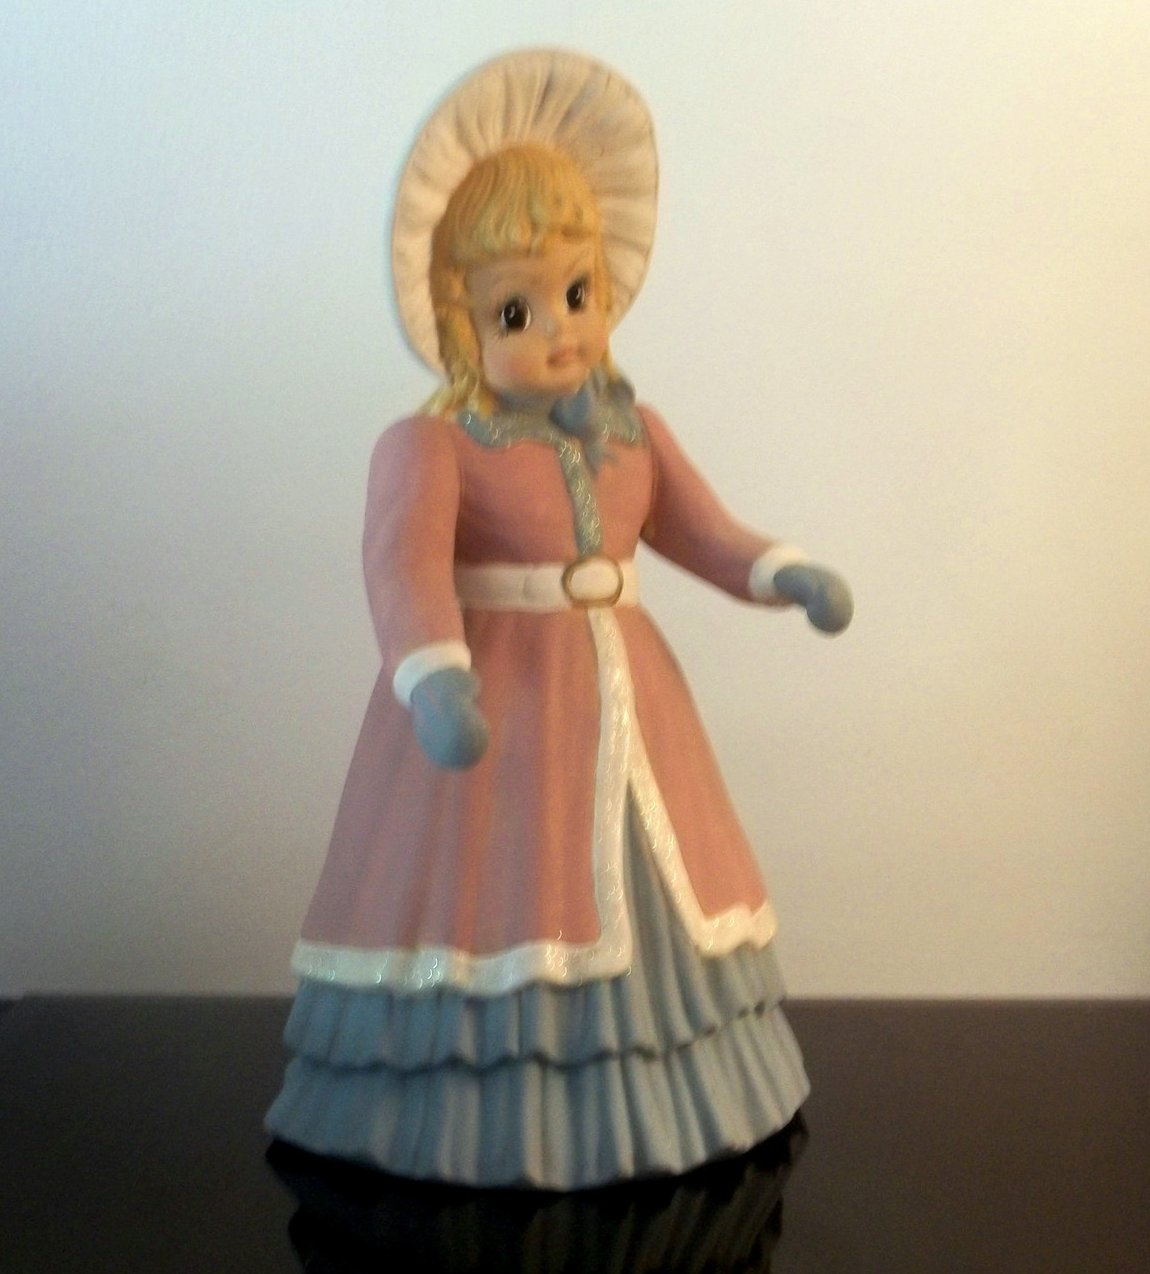 Vintage Christmas Caroler Noelle 13.5 inch Sugarplum Collection